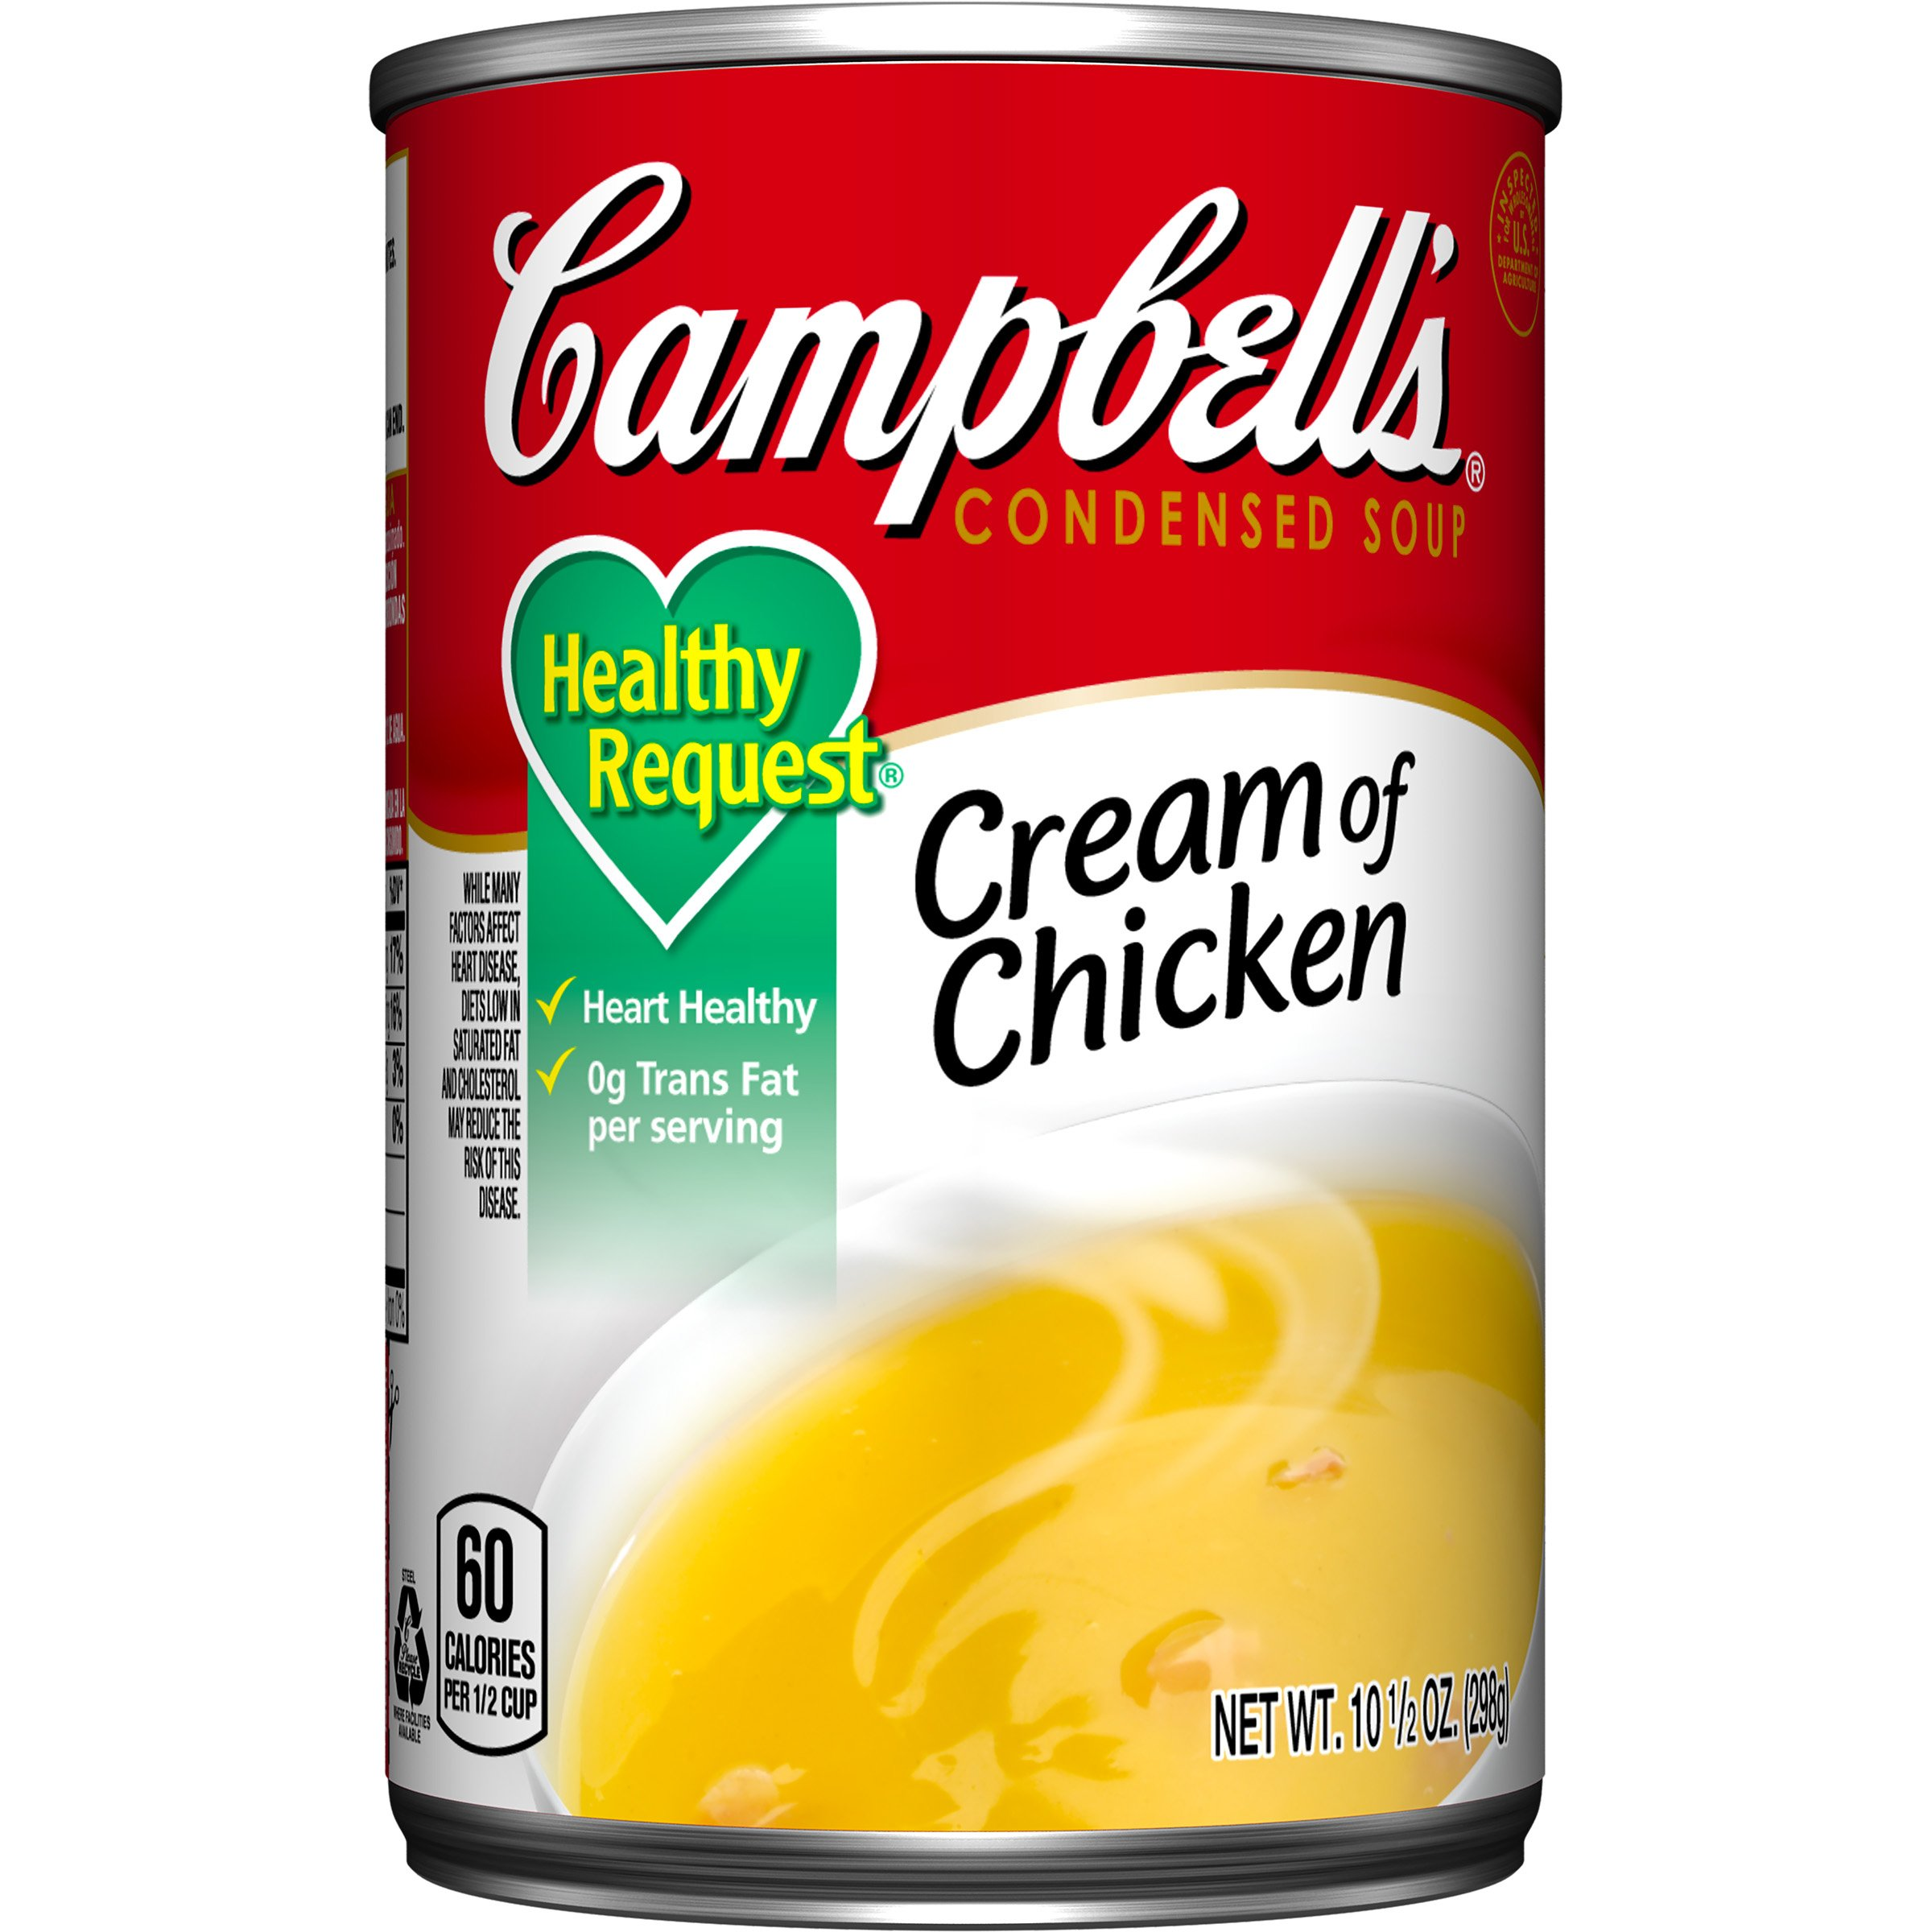 Campbell's Healthy Request Condensed Soup, Cream of Chicken, 10.5 Ounce (Pack of 24) by Campbell's